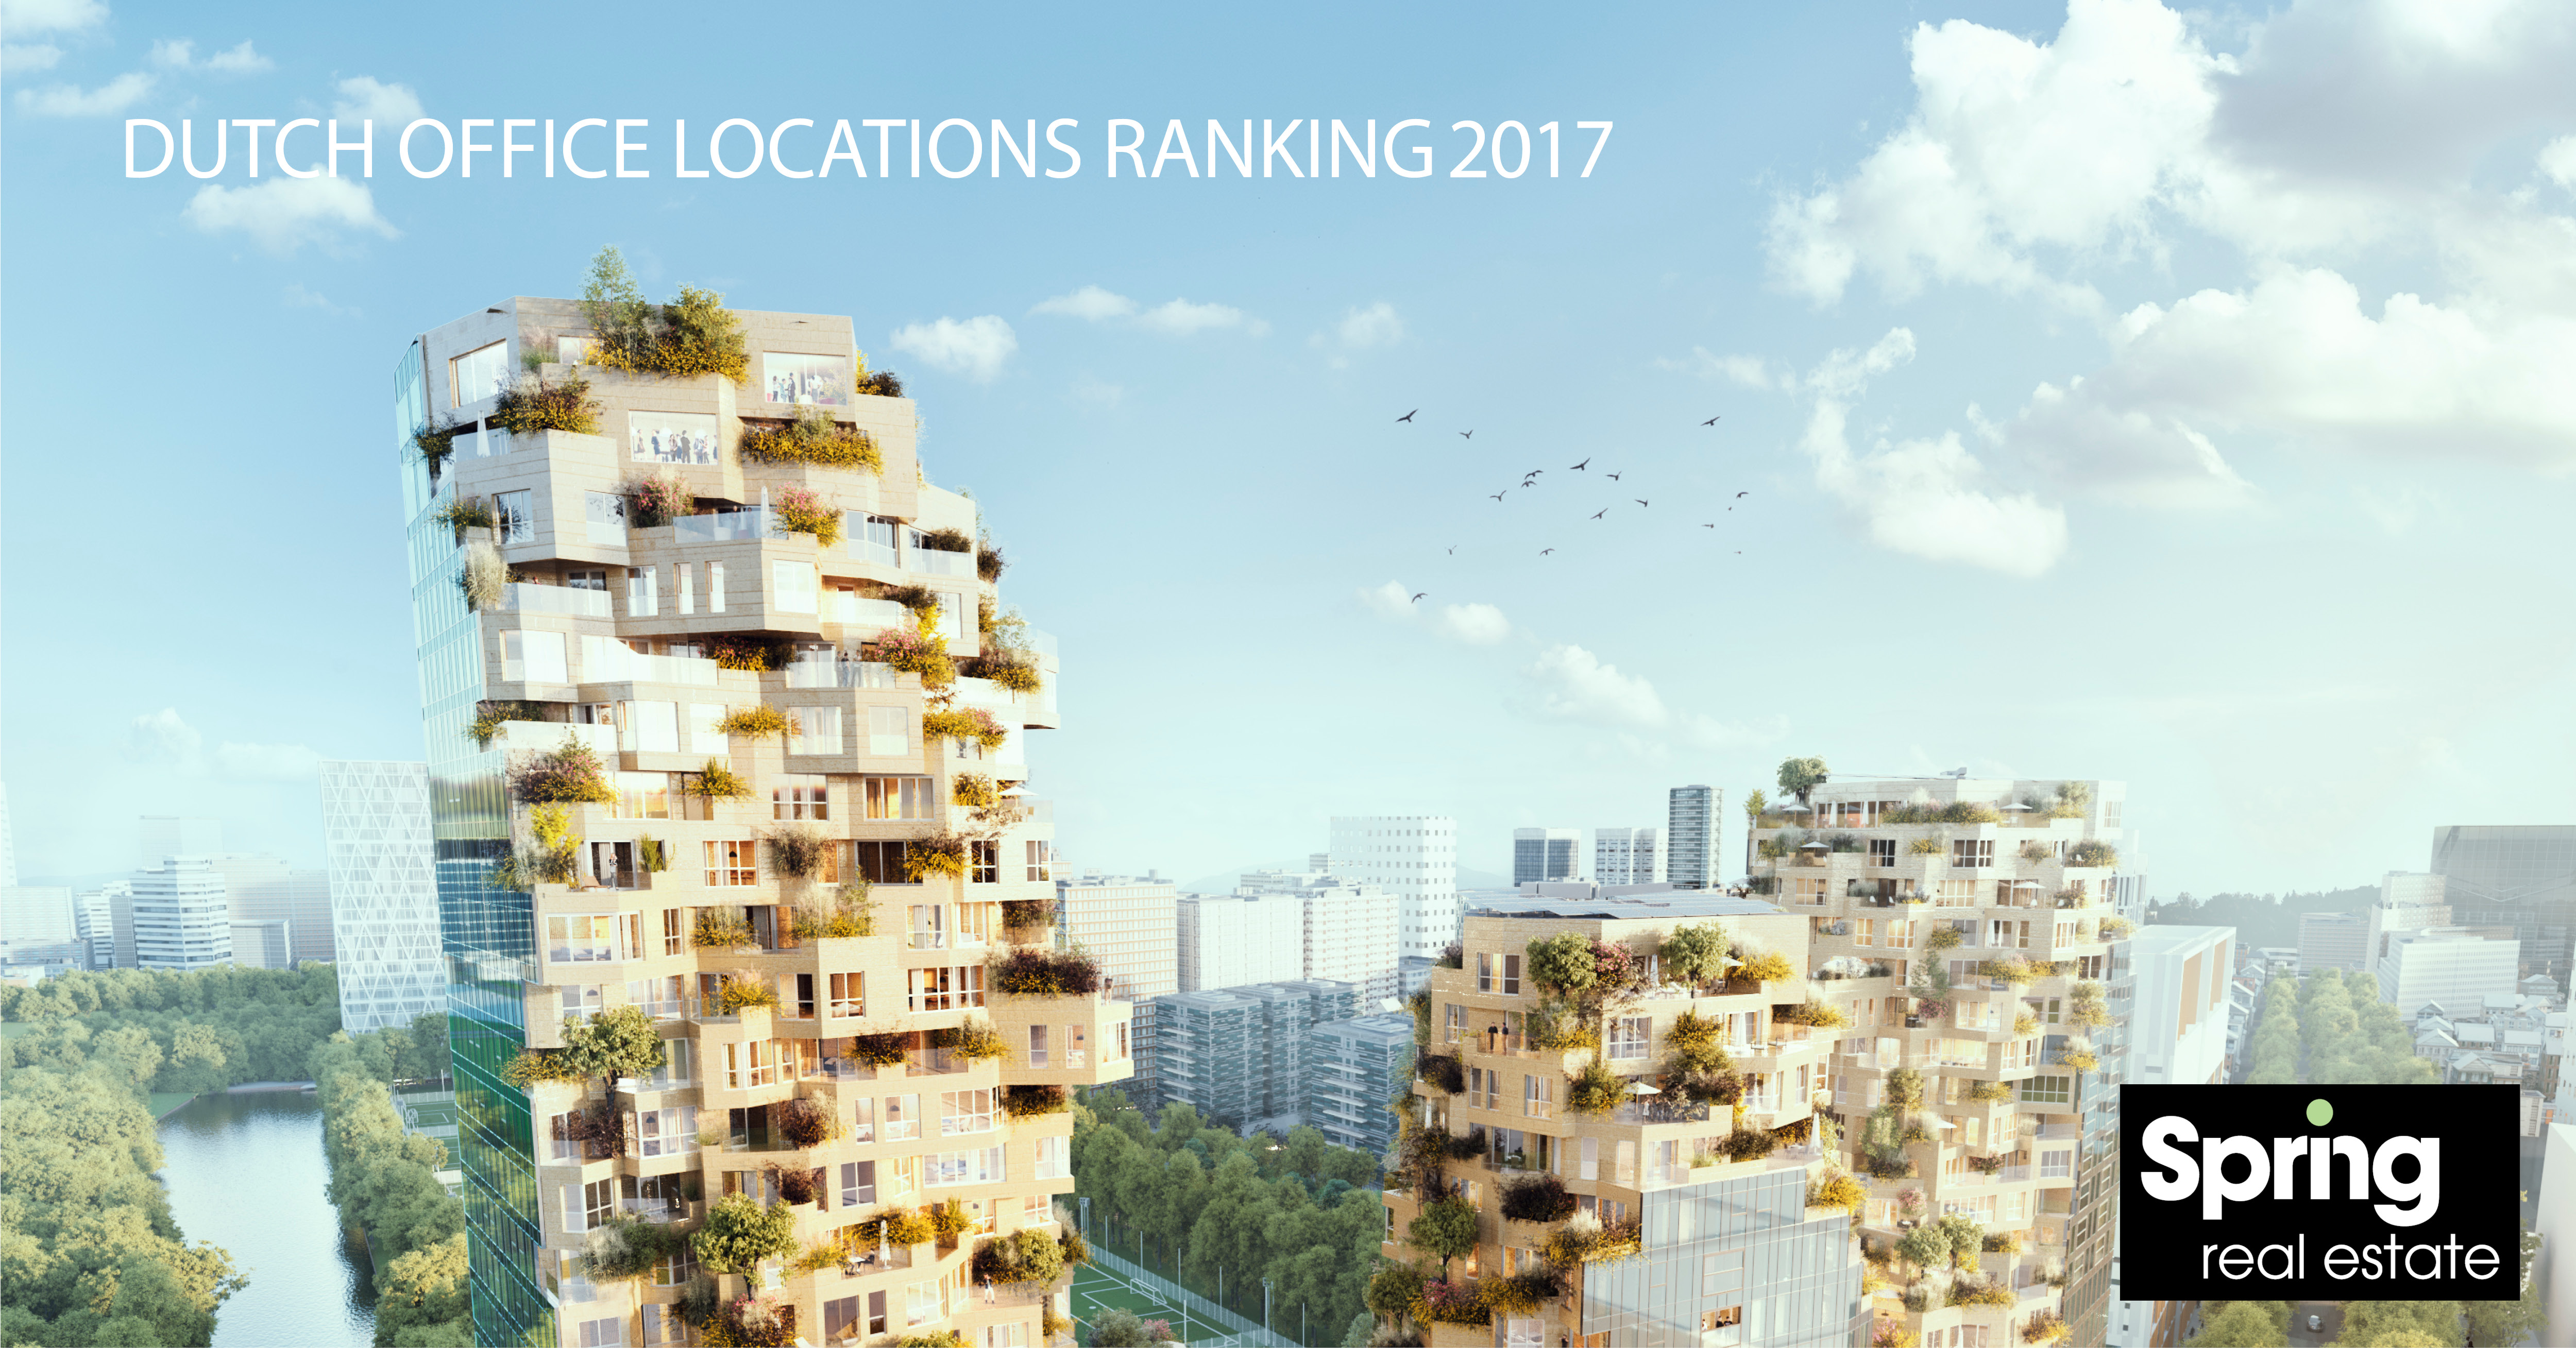 Dutch Office Locations Ranking 2017